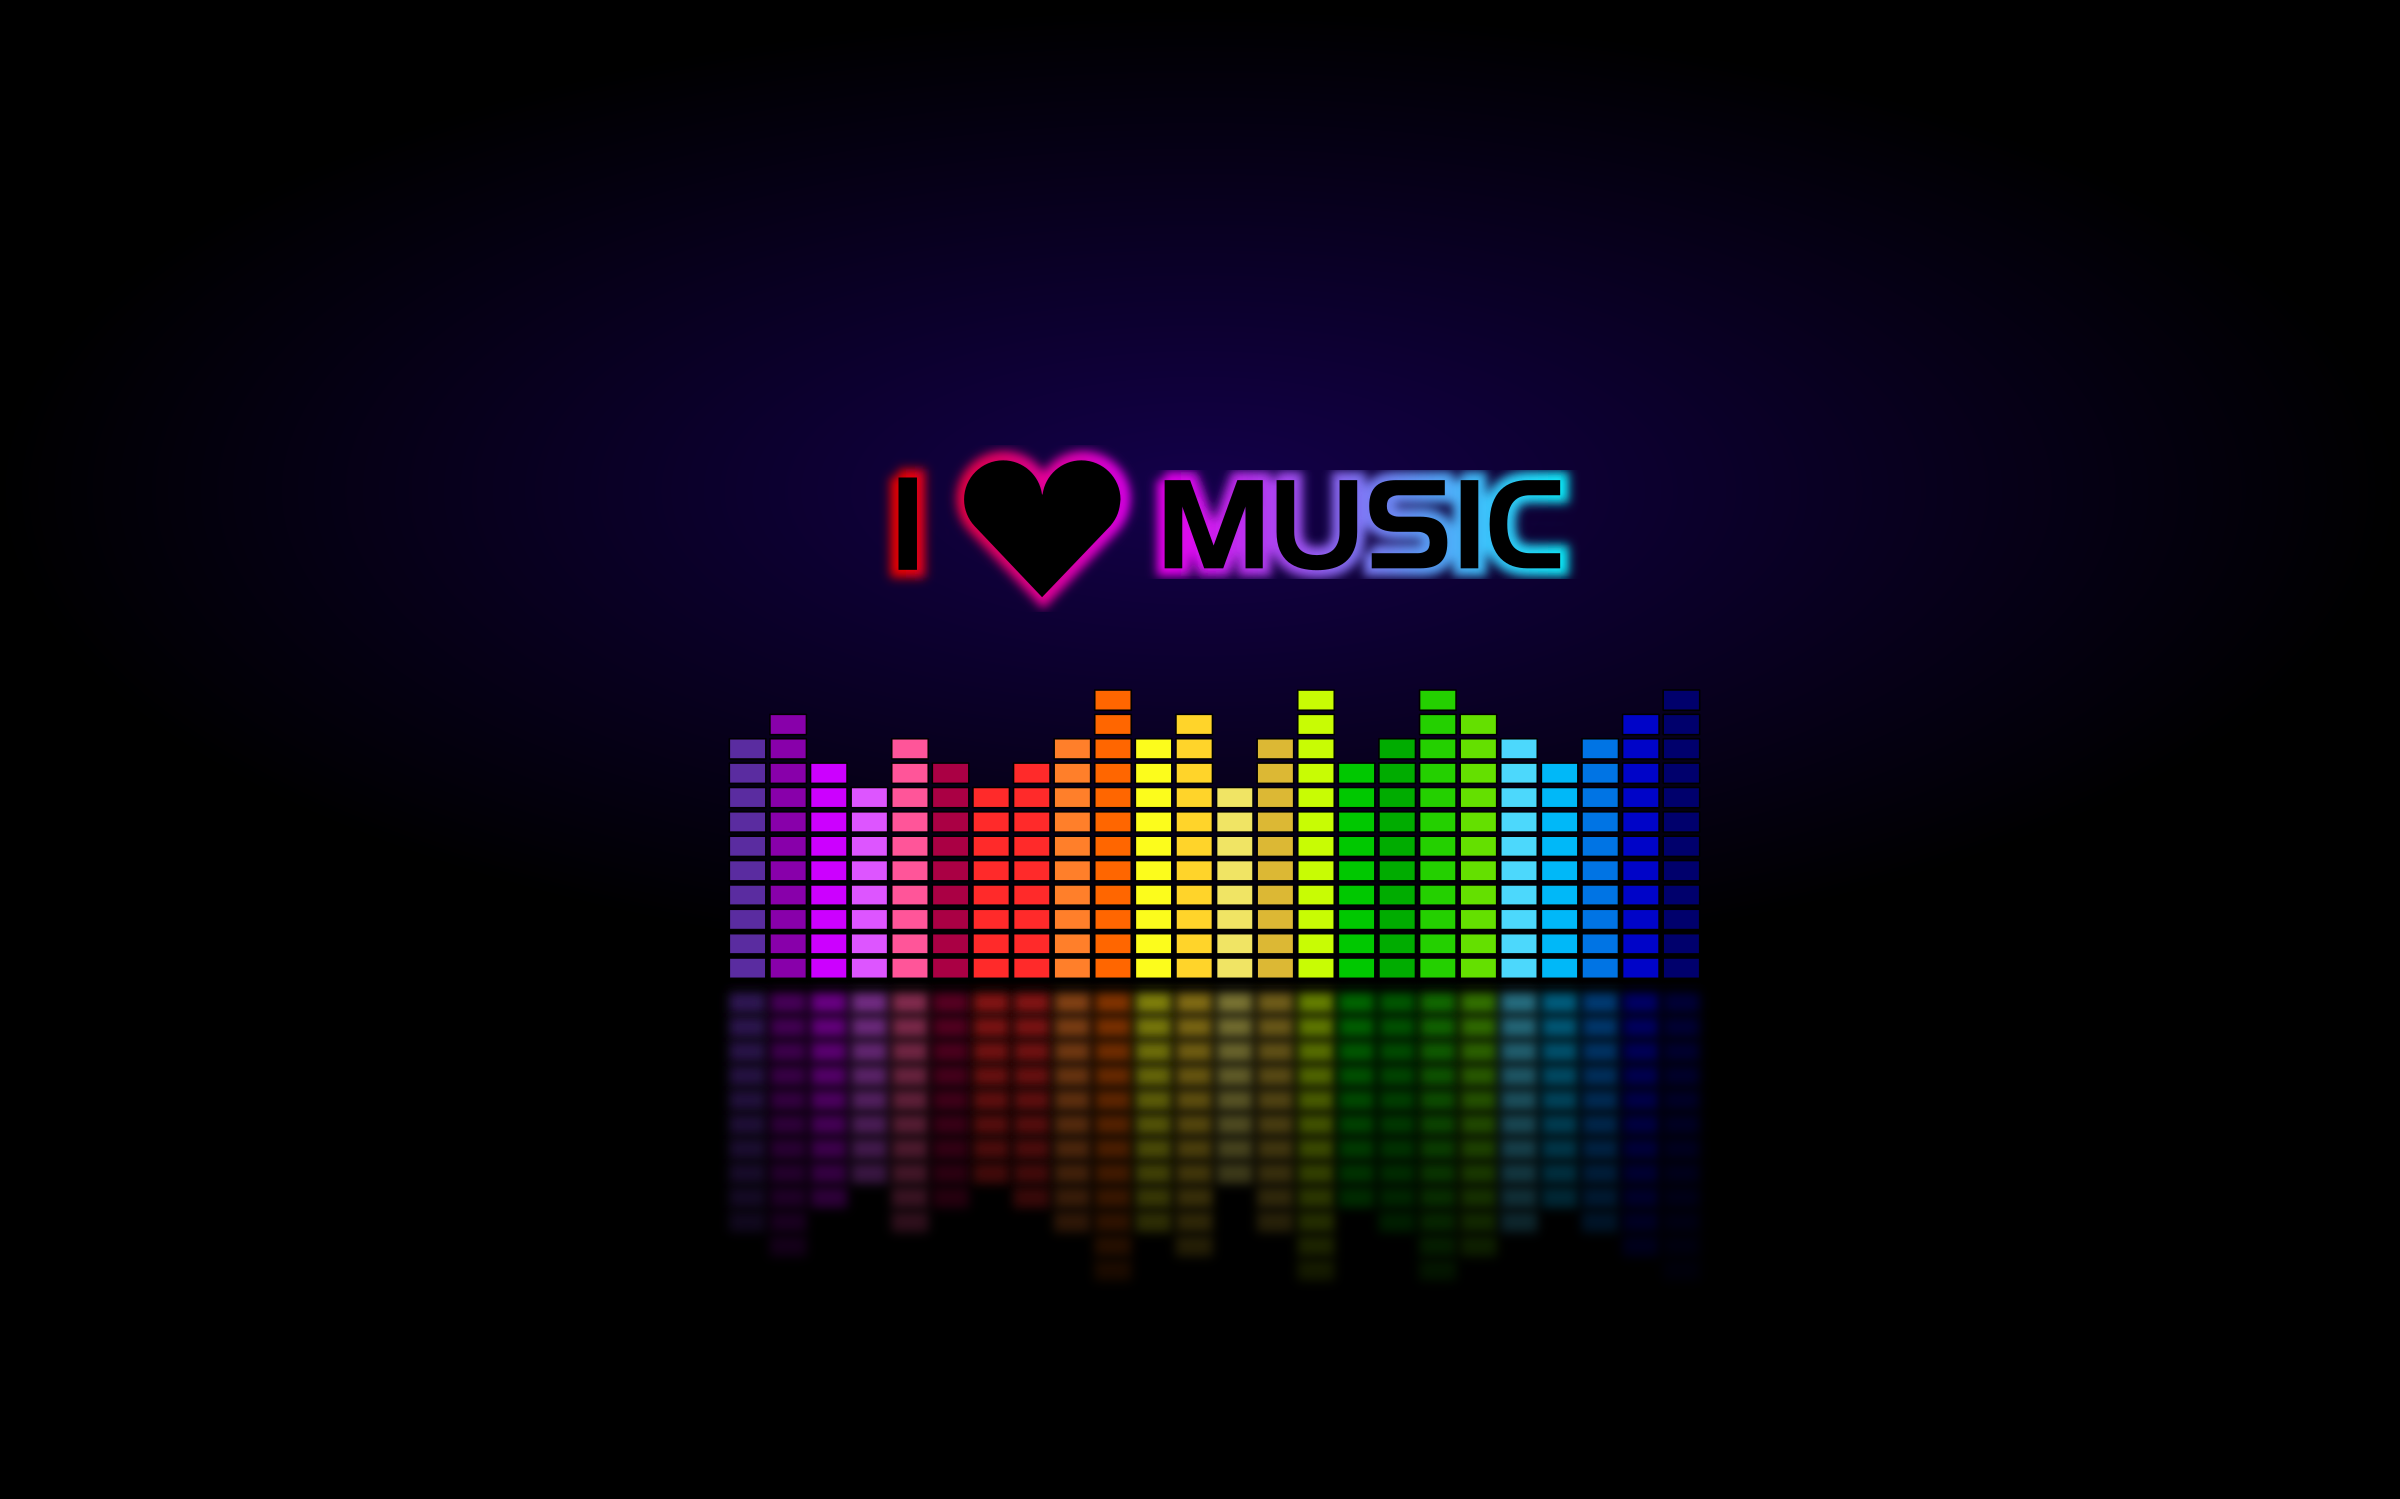 Love Wallpapers Songs : clipart - I LOVE MUSIc (Wallpaper)